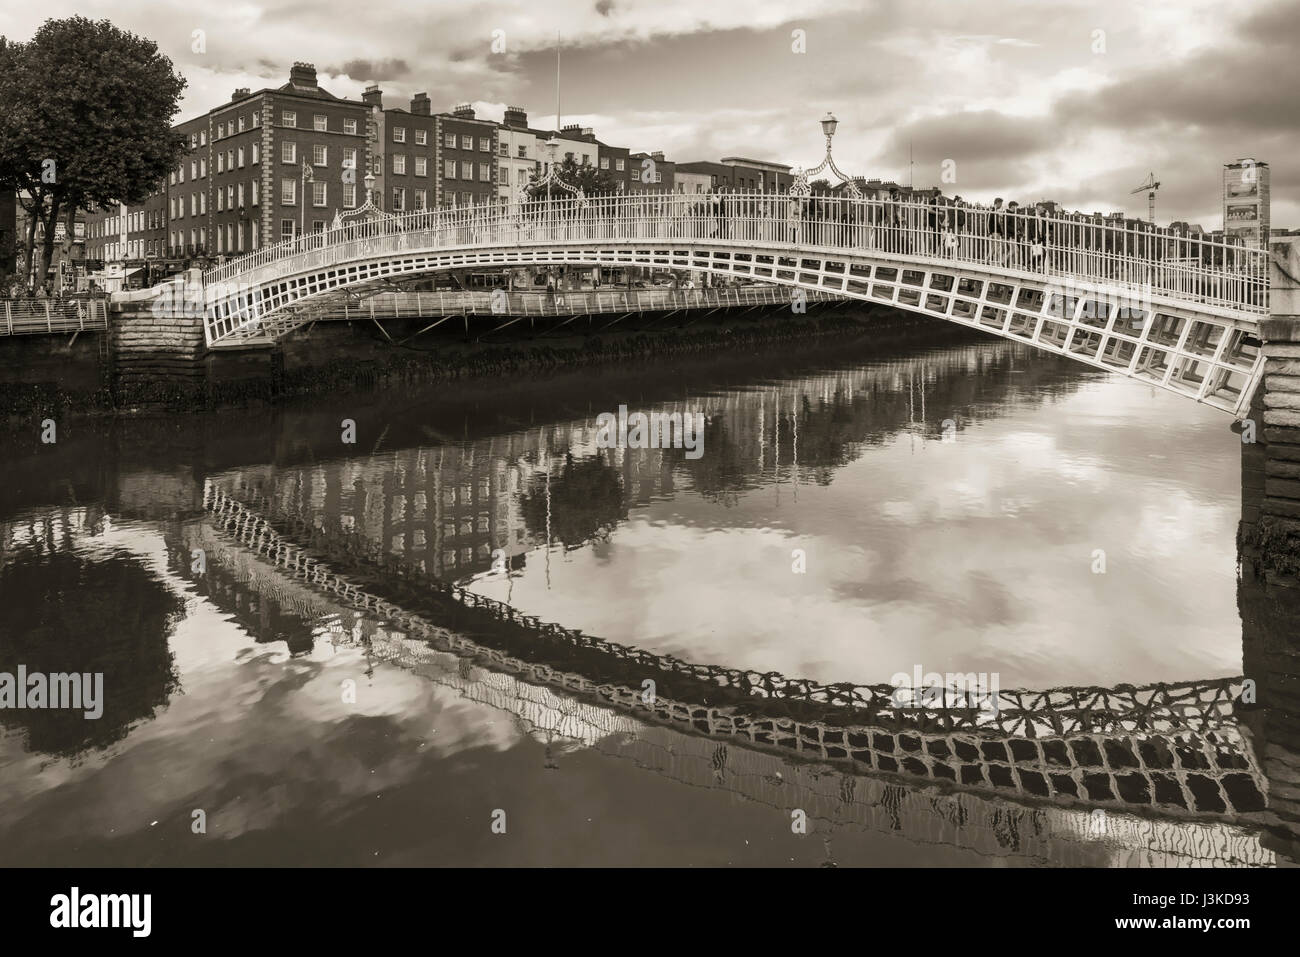 the-hapenny-bridge-officially-known-as-the-liffey-bridge-over-a-calm-J3KD93.jpg